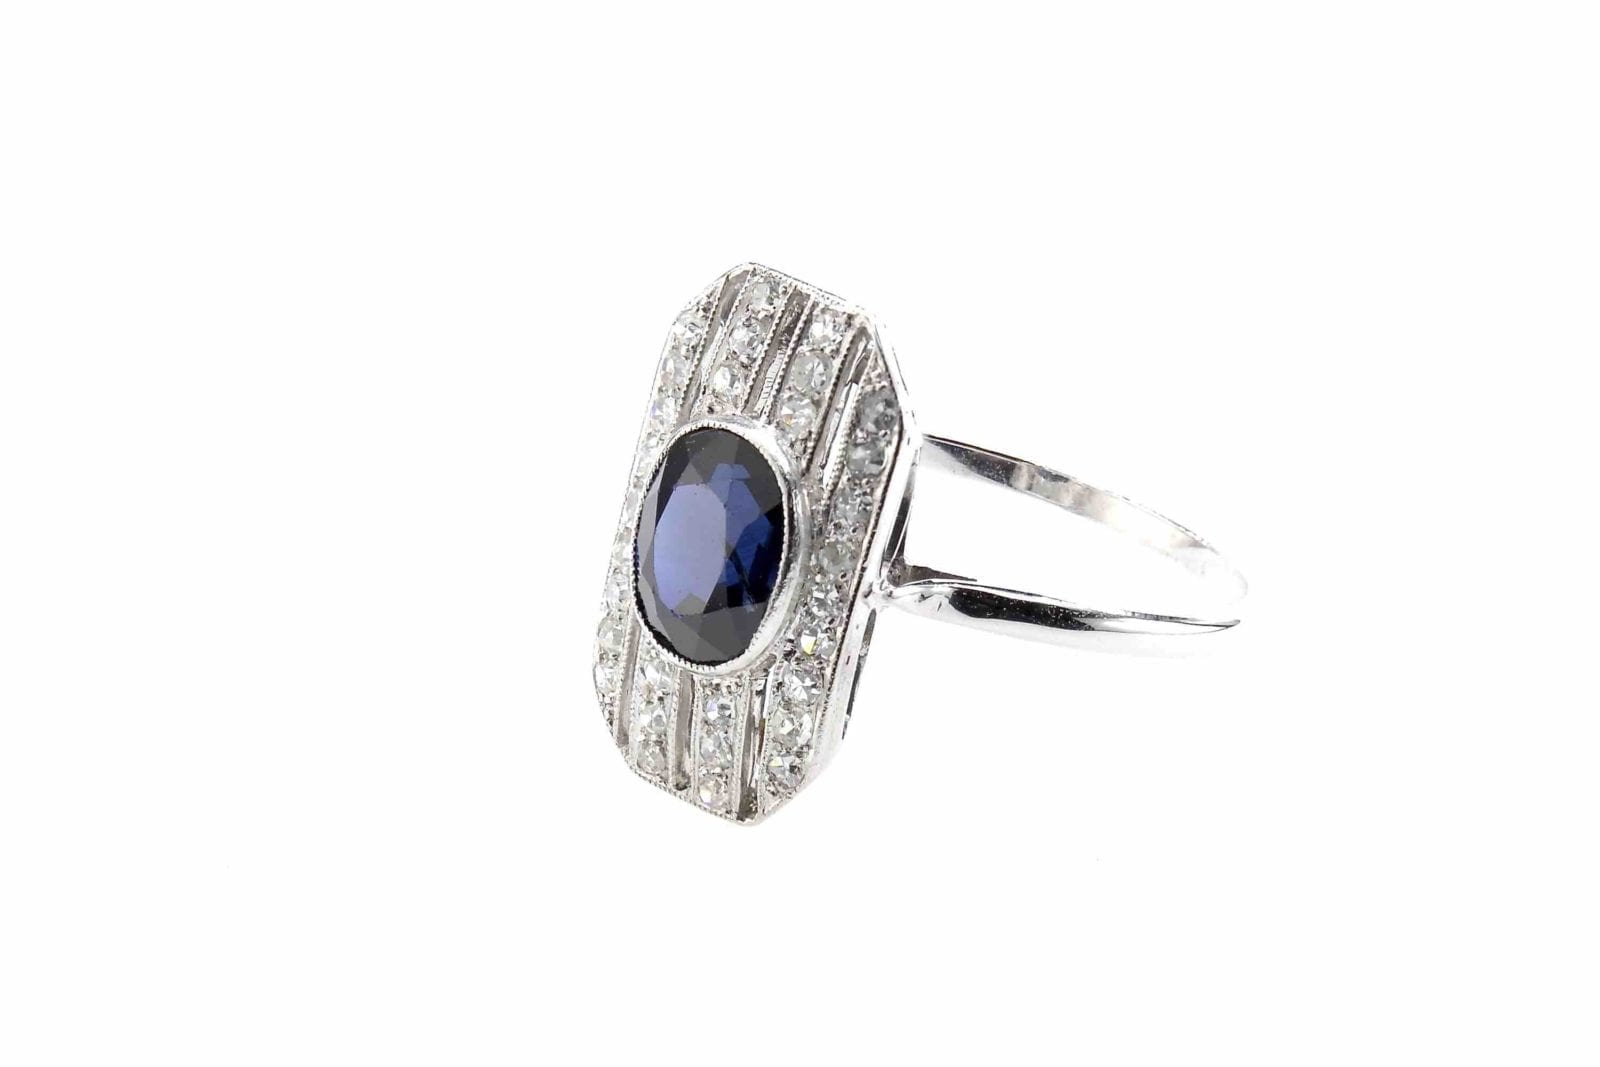 Bague vintage saphir et diamants en or blanc 18k